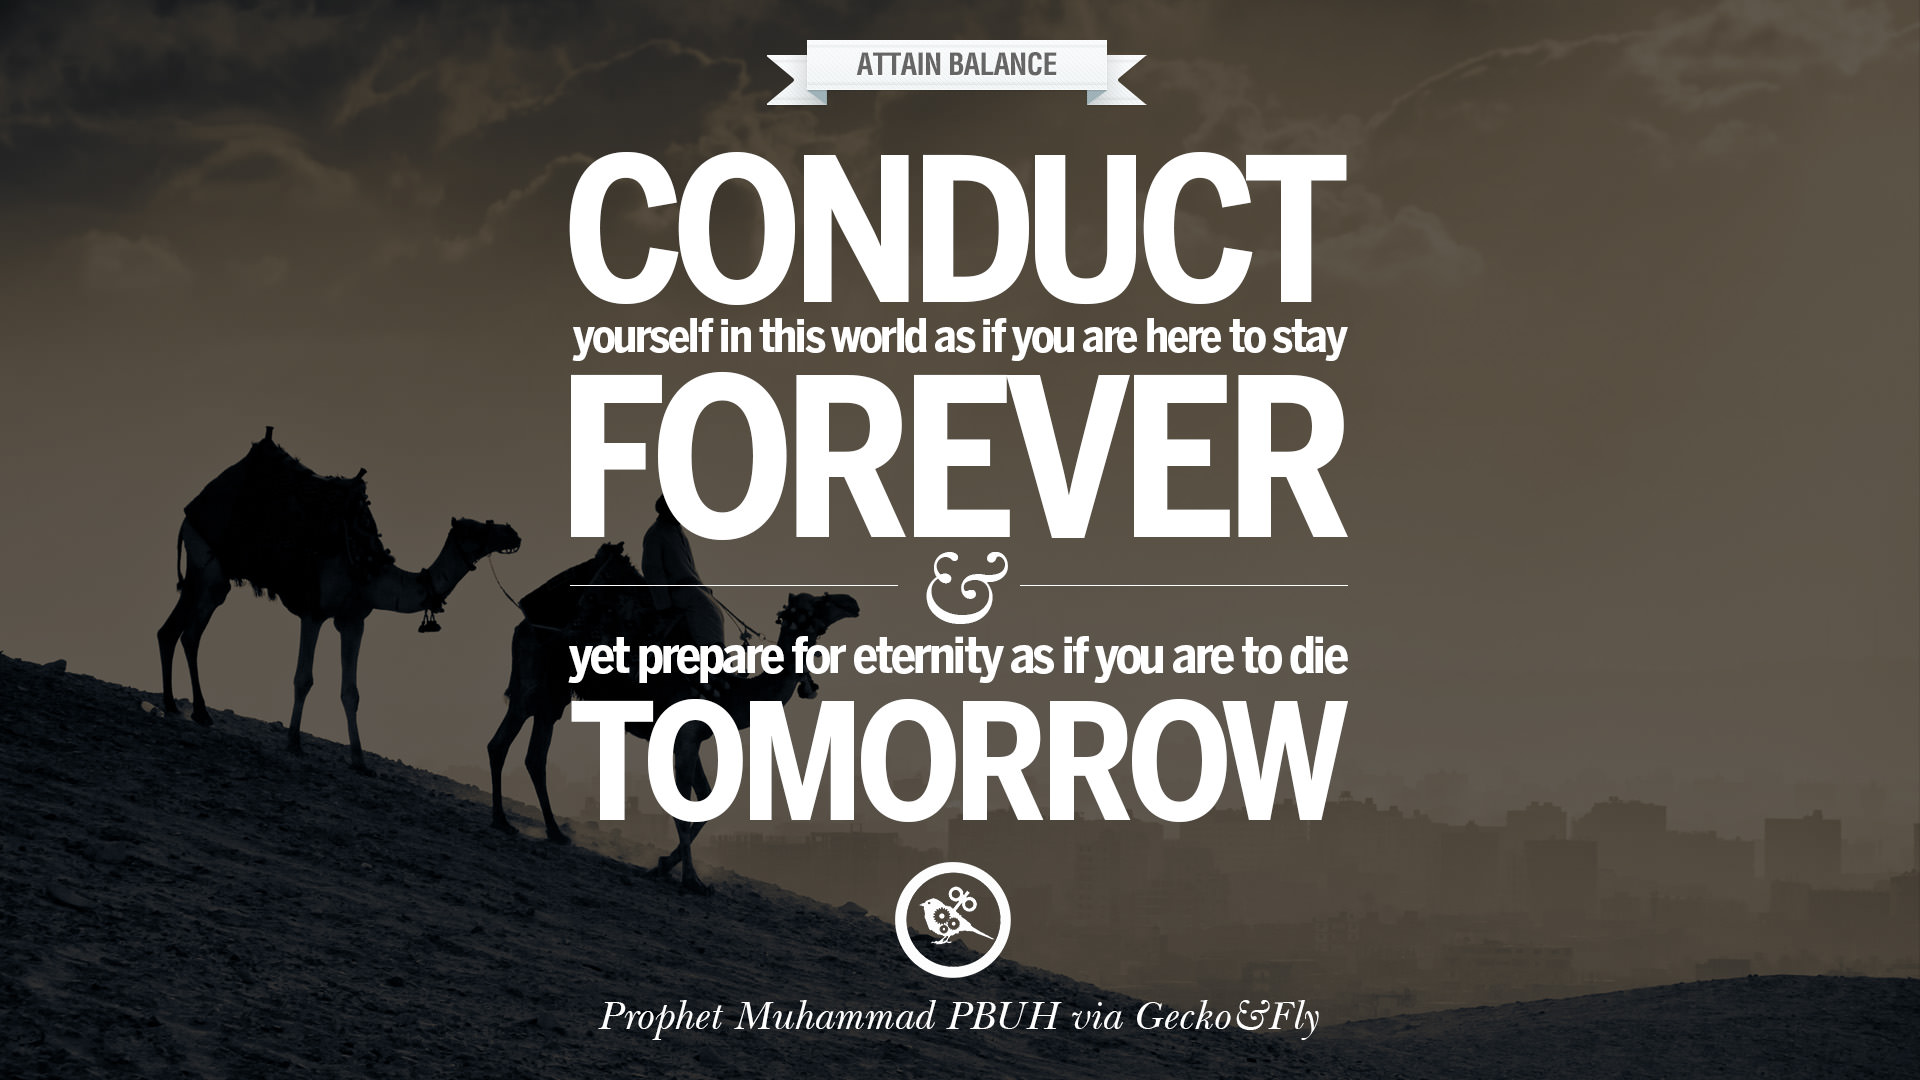 Islamic Quotes About Life 10 Beautiful Prophet Muhammad Quotes On Love God Compassion And